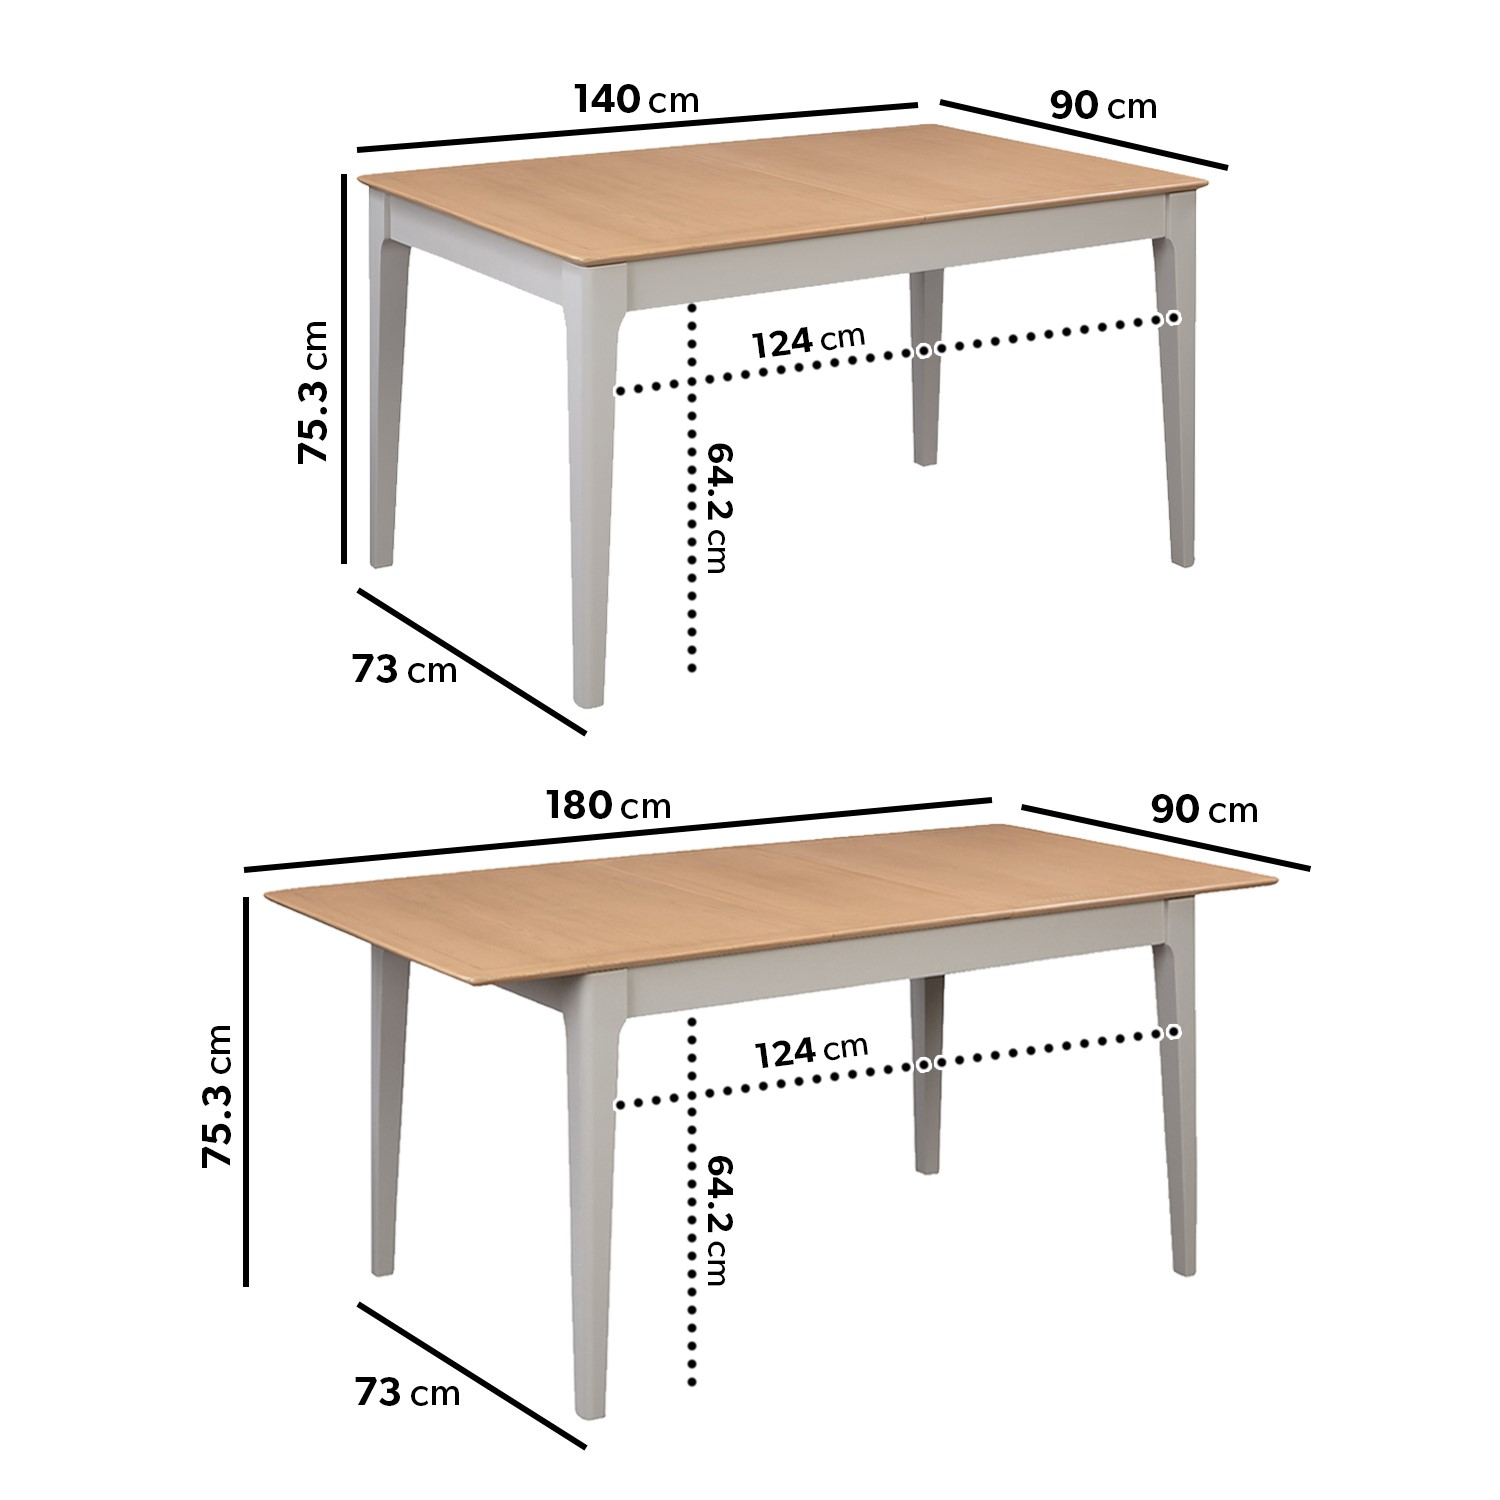 Extendable Dining Table & 9 Chairs in Fabric & Solid Oak   Adeline